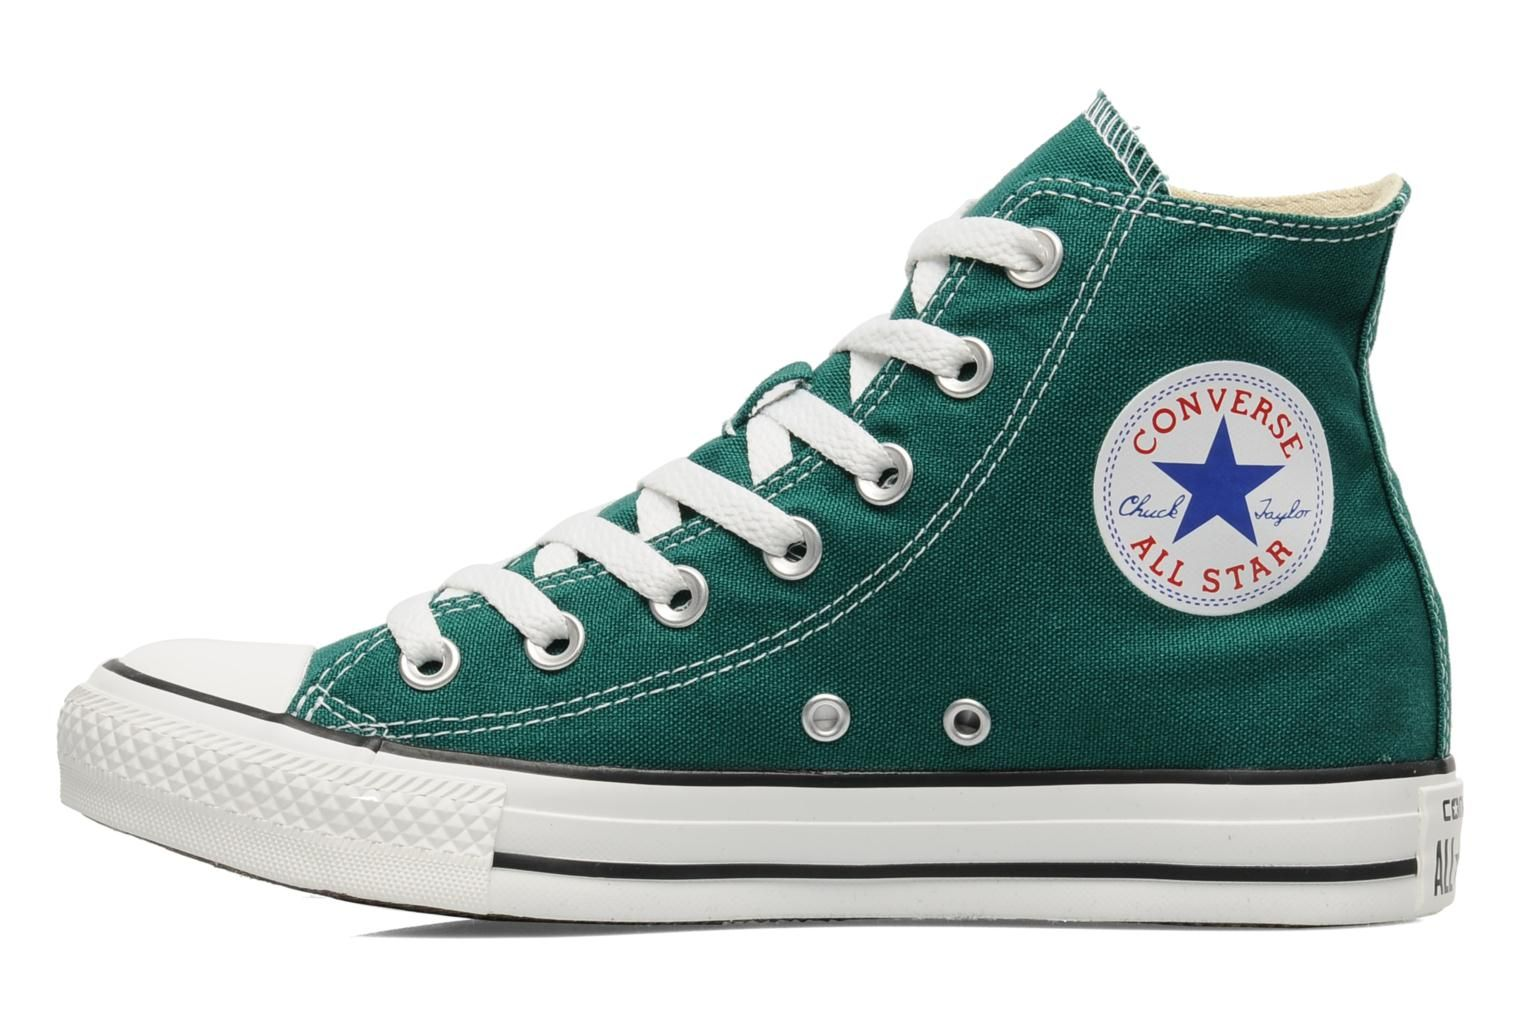 6655abbb4cdc8b Chuck Taylor All Star Converse